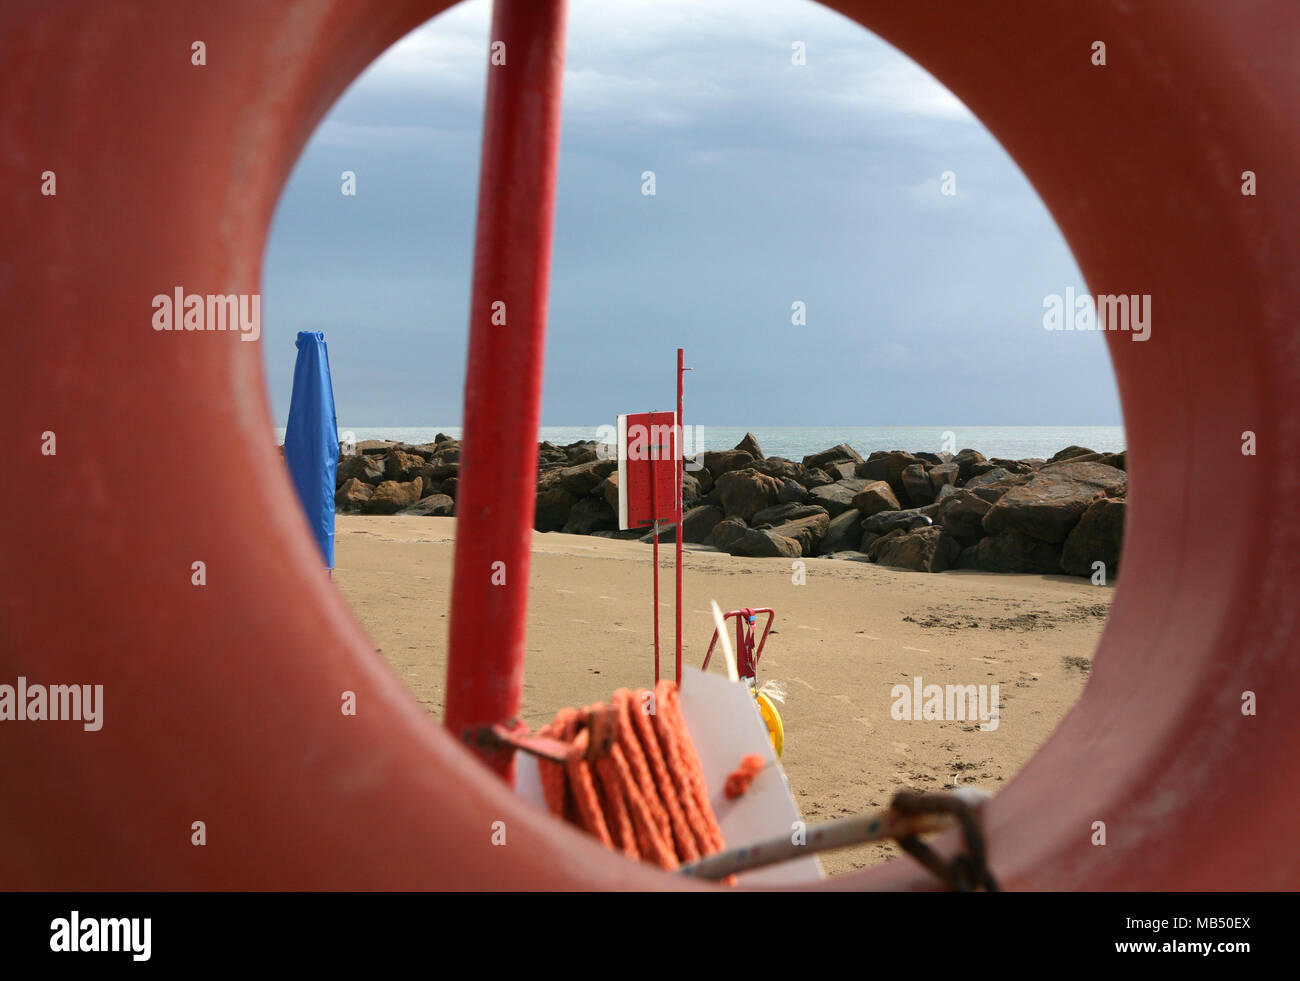 Beach safety items from red rescue donut - Stock Image